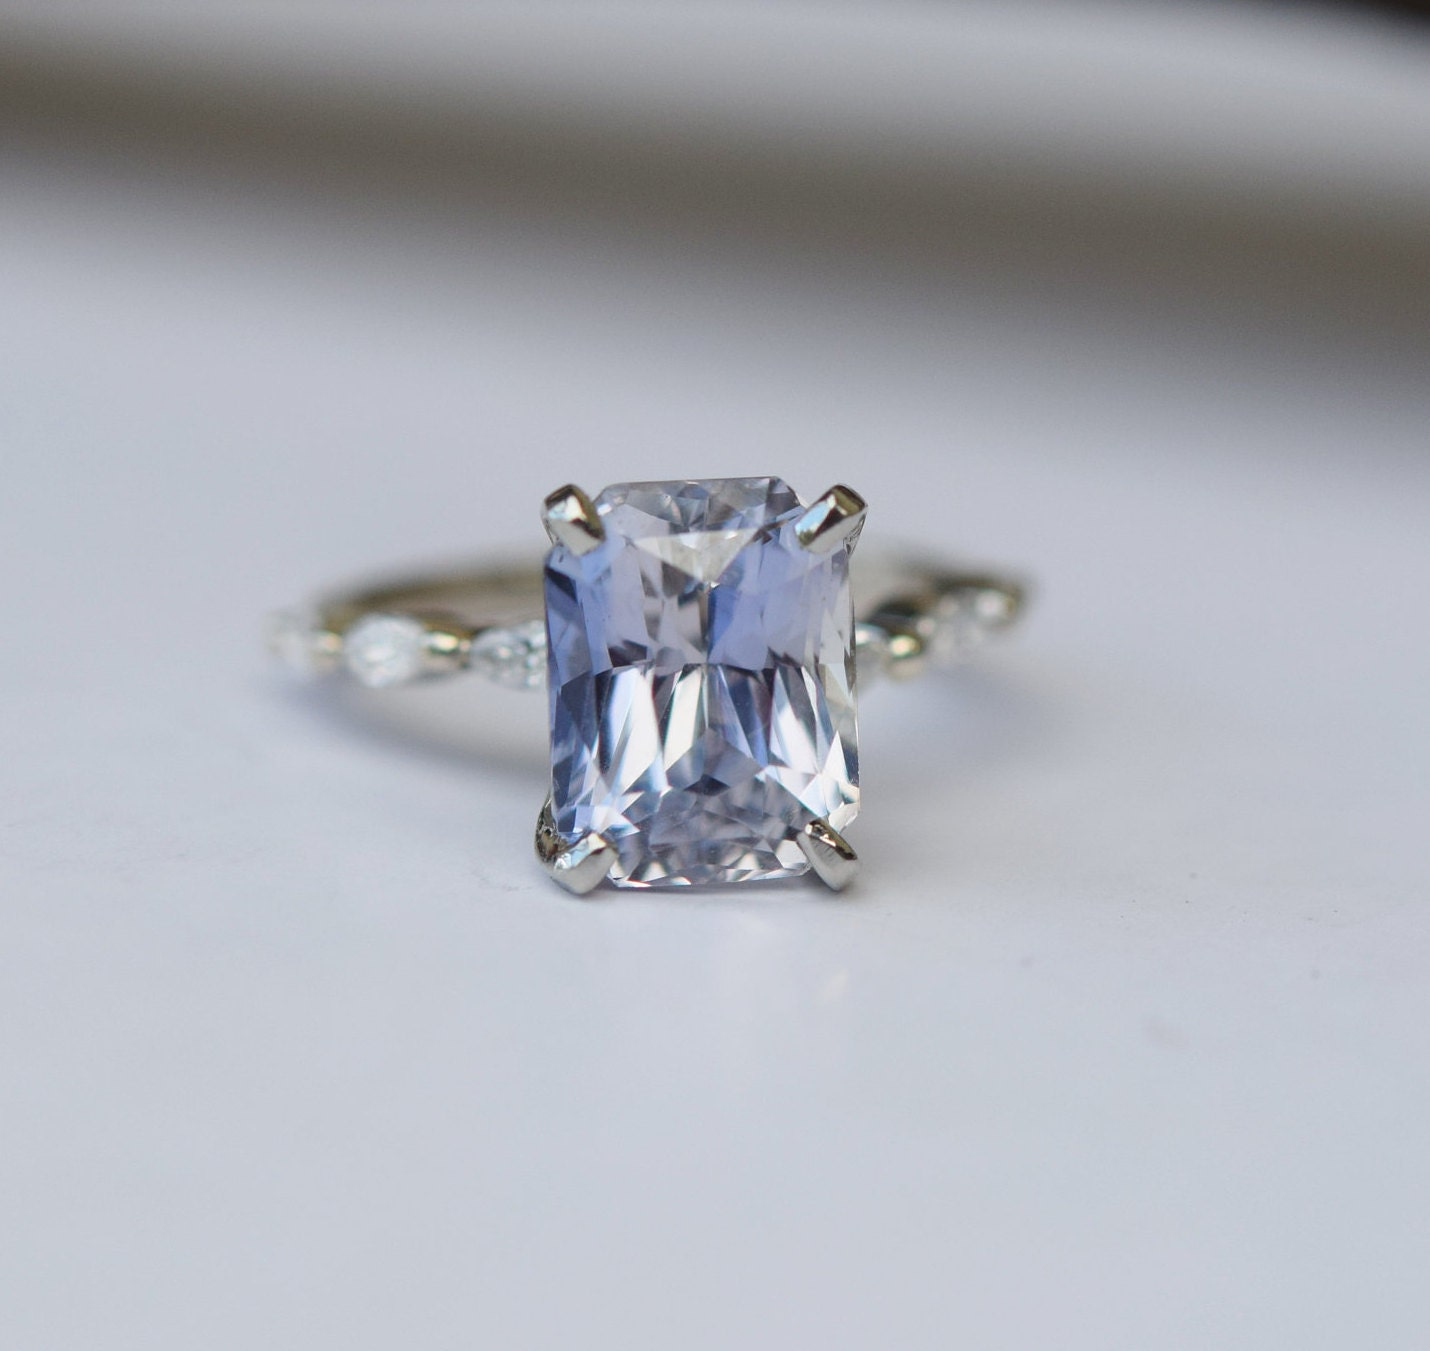 engagement aqua stone shop light sapphire floor ring in prong white double emitter metal claw emerald blue render ctw gold solitaire cut